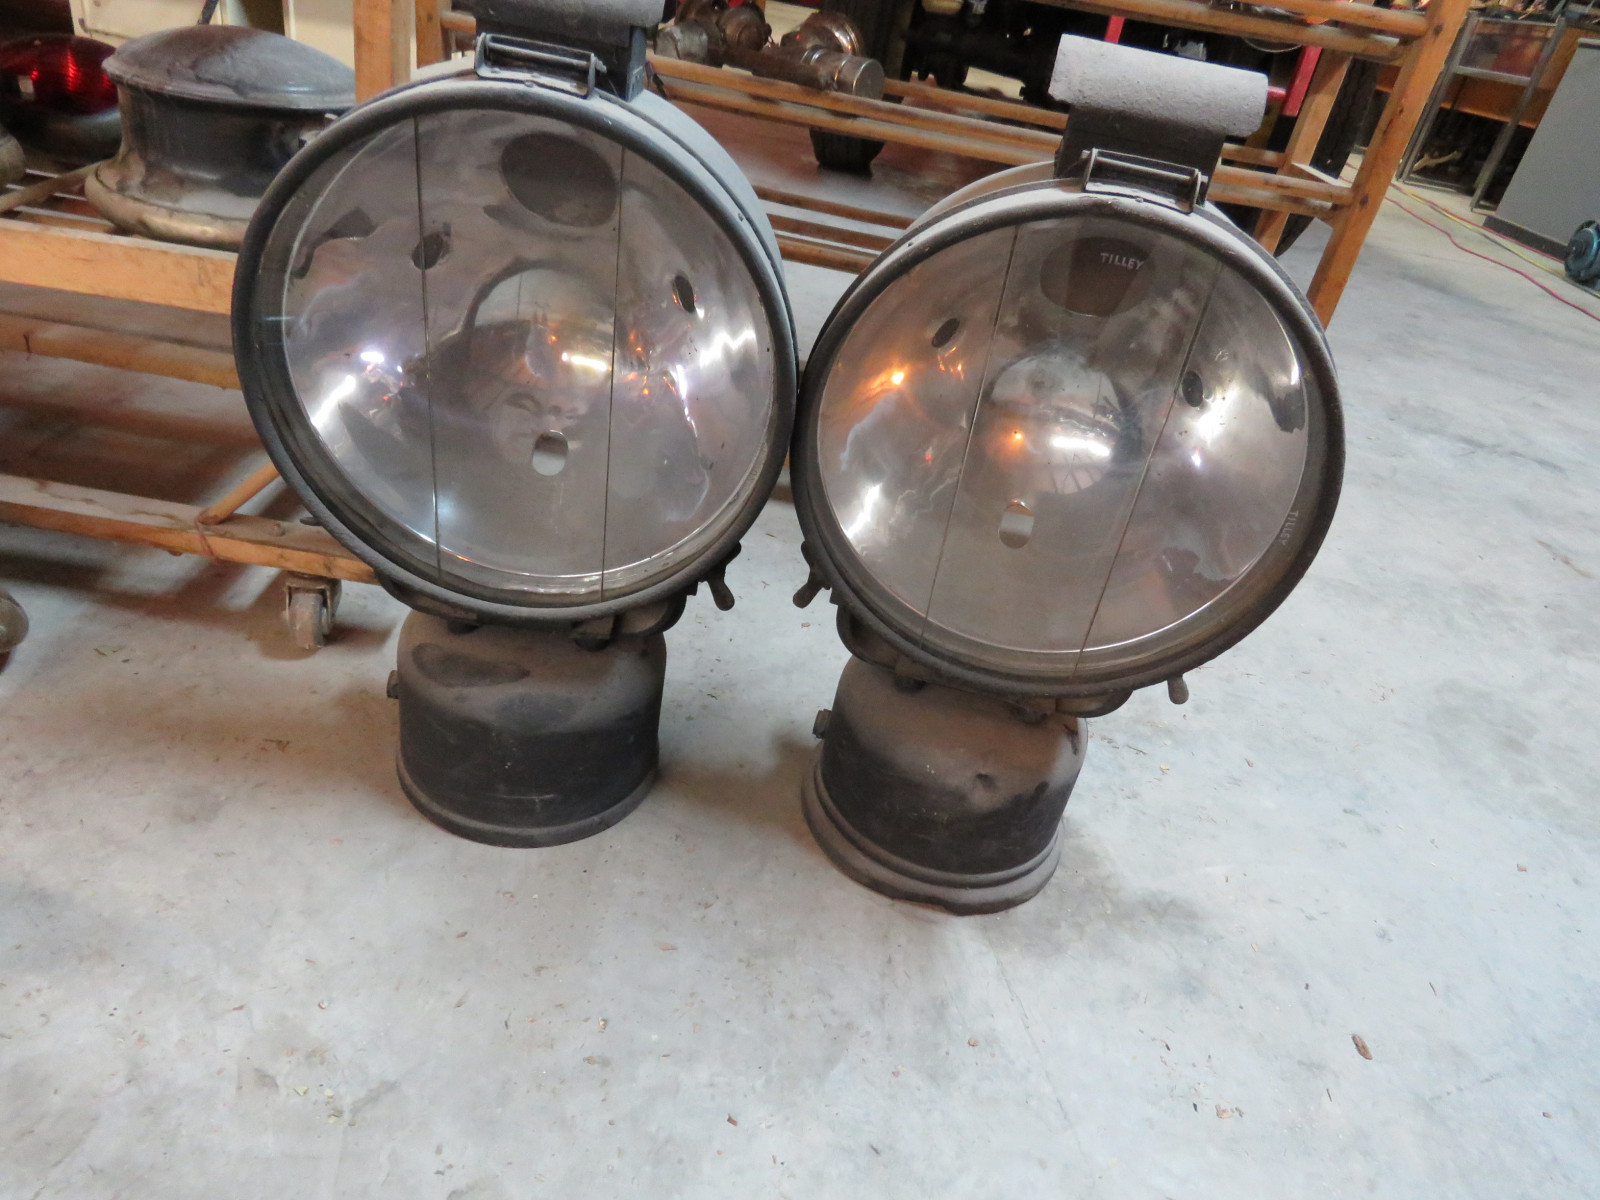 Steam Tractor Lights - Image 1